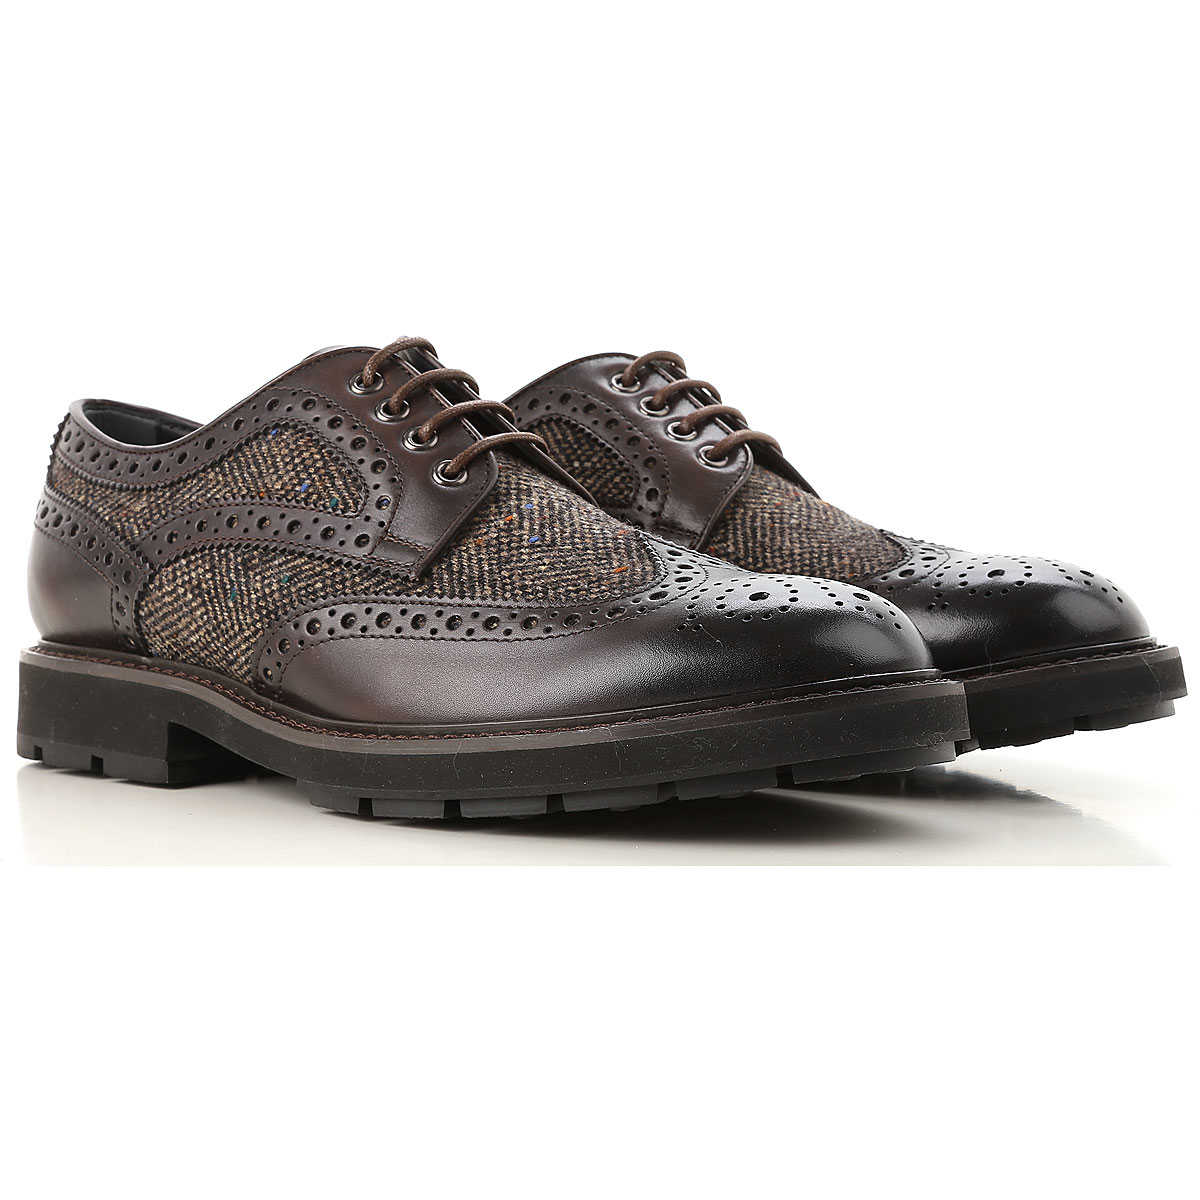 Tods Lace Up Shoes for Men Oxfords Derbies and Brogues On Sale USA - GOOFASH